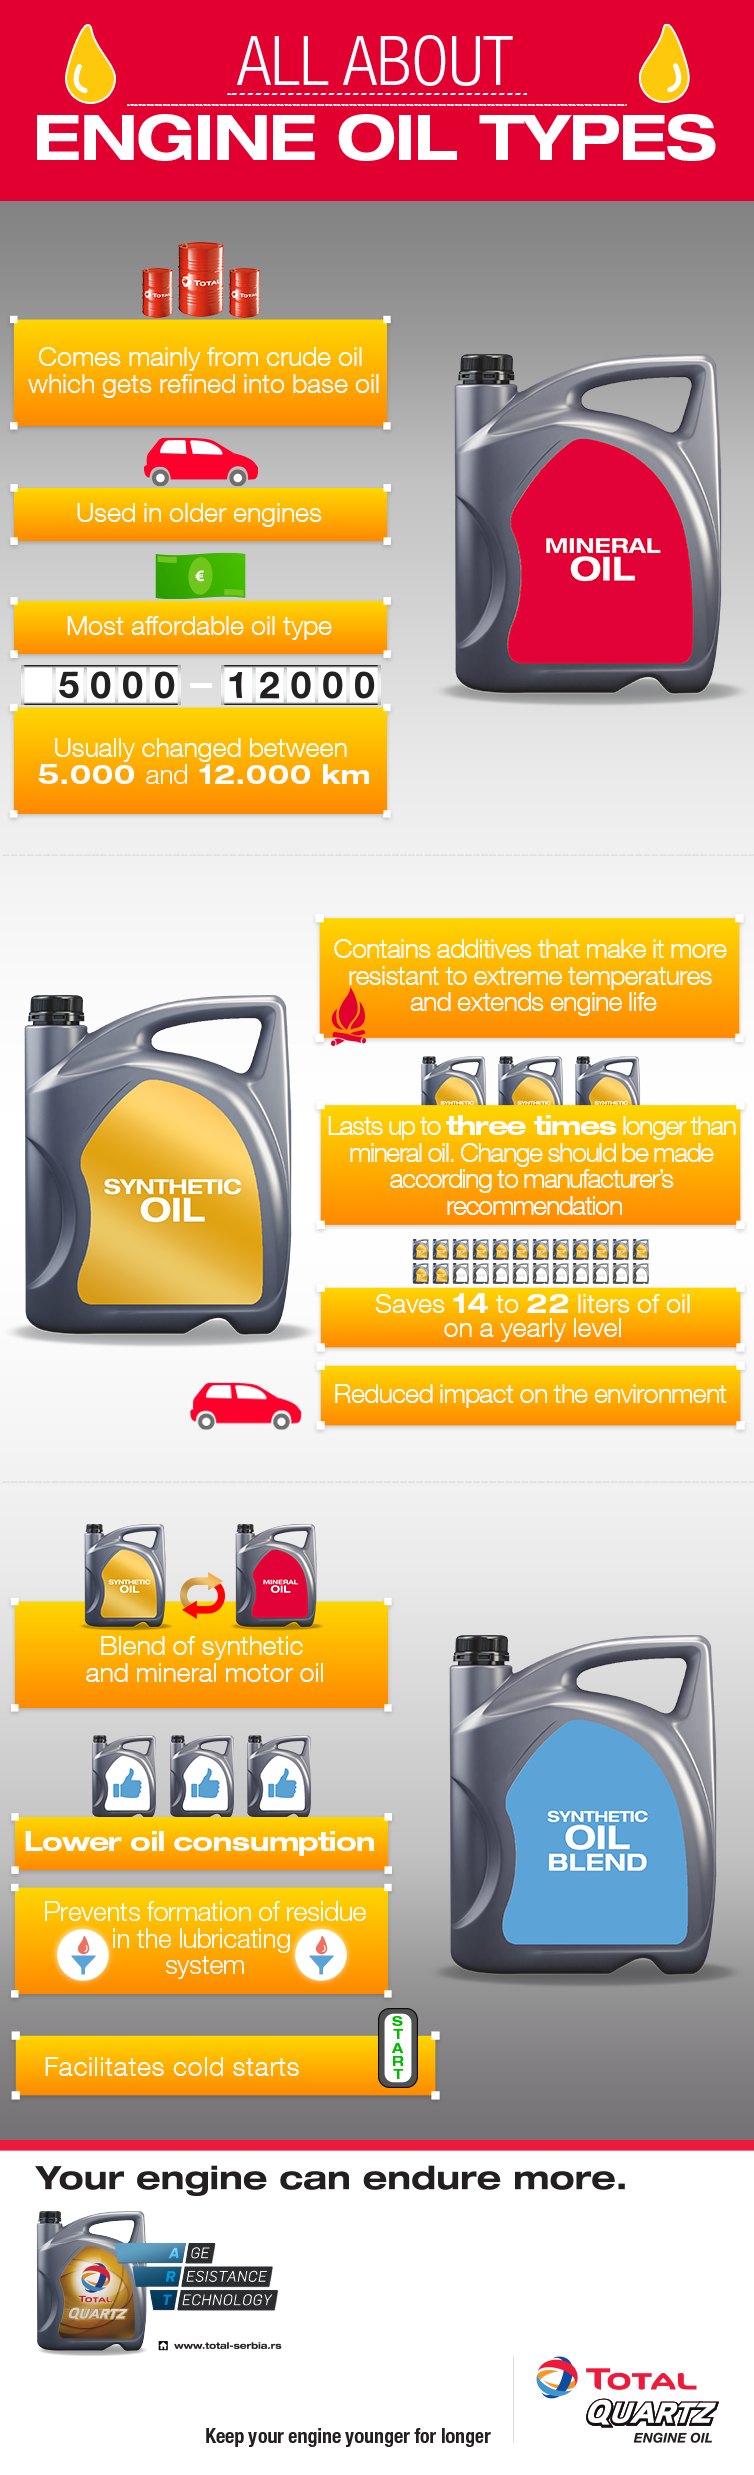 All about engine oil types